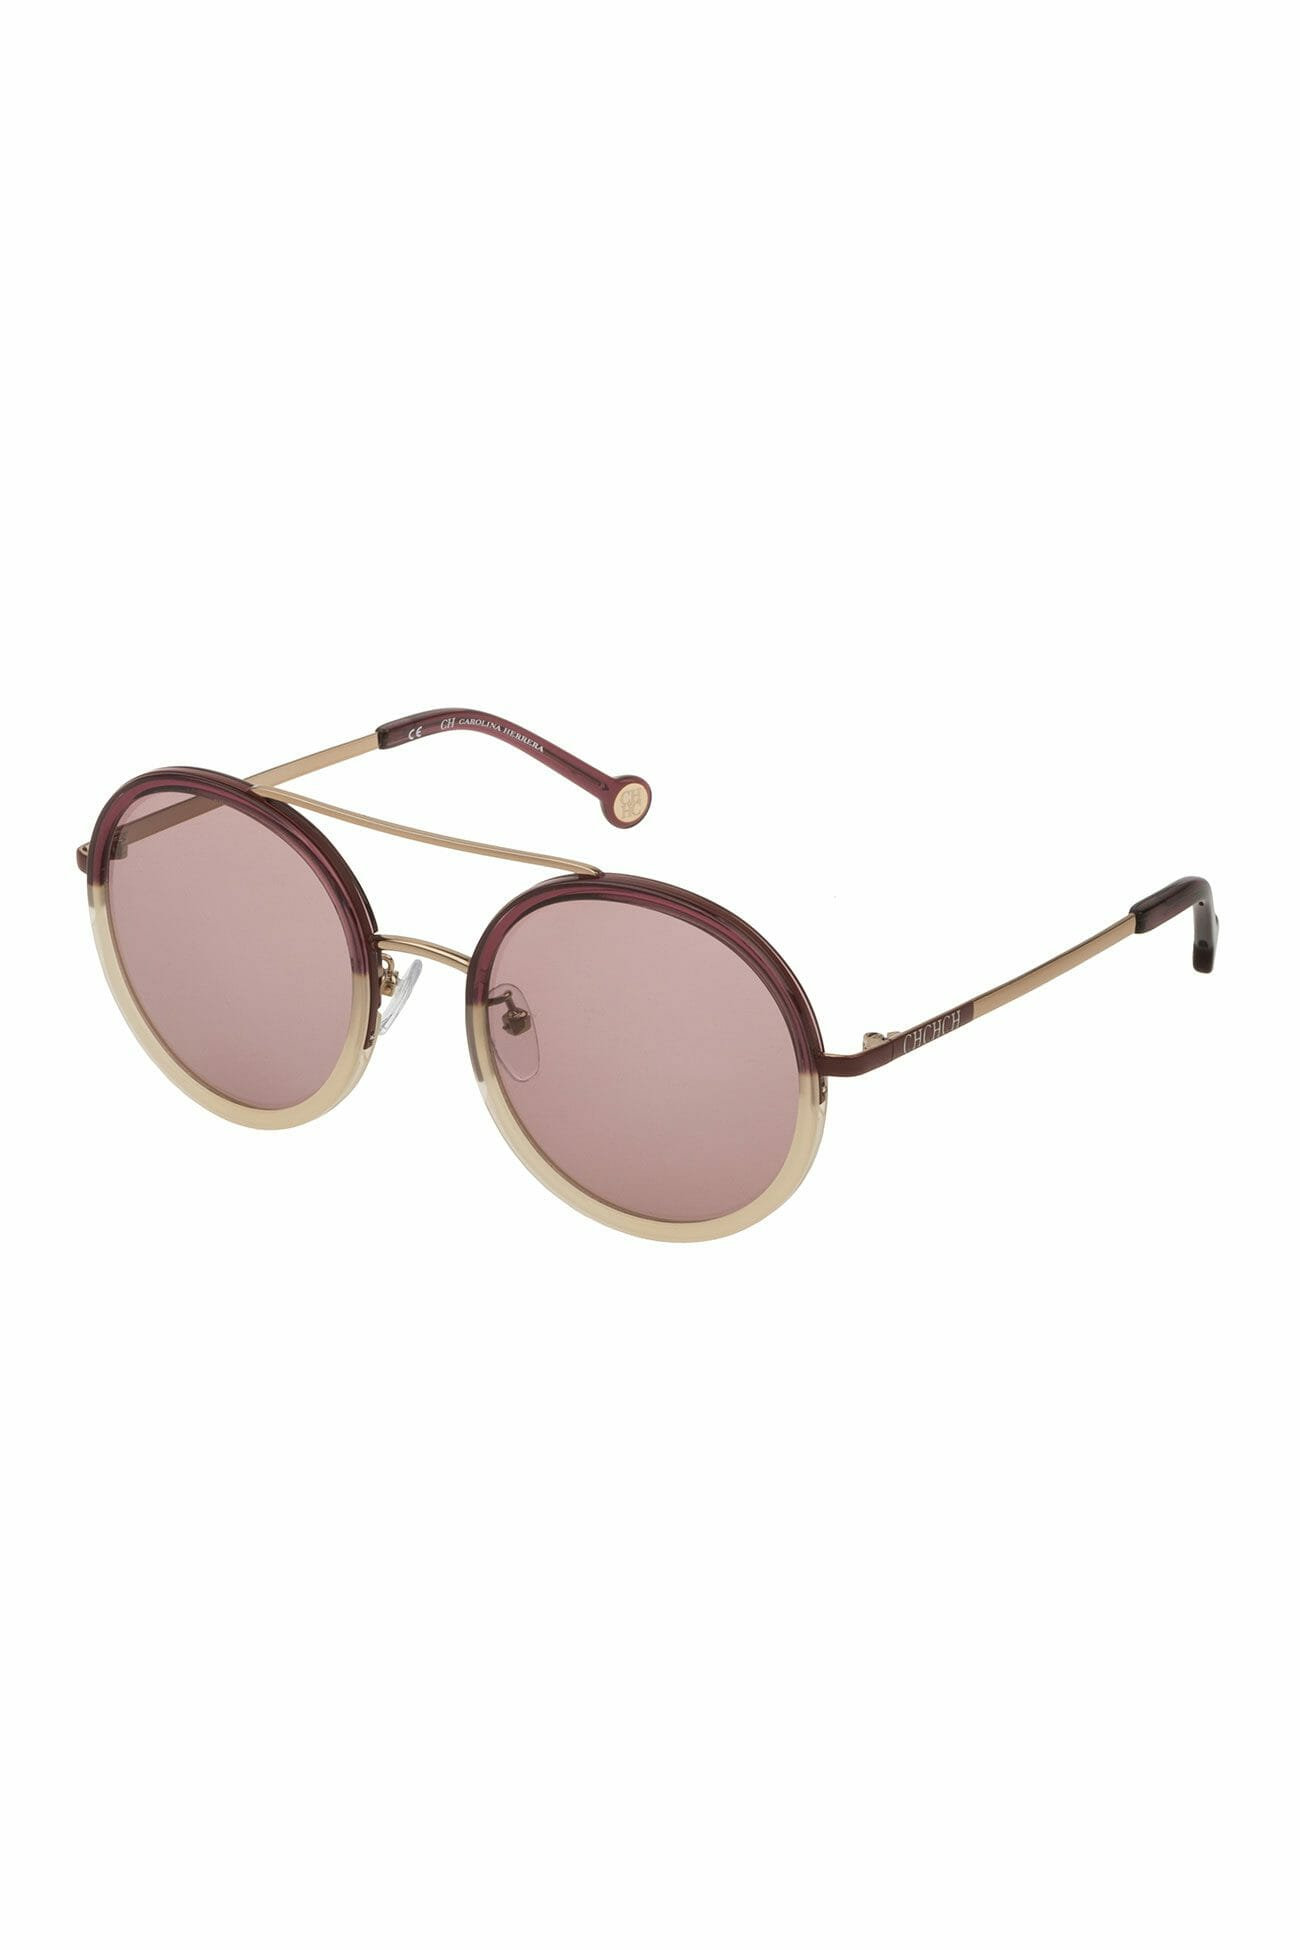 CH-Carolina-Herrera-Eyewear-Women